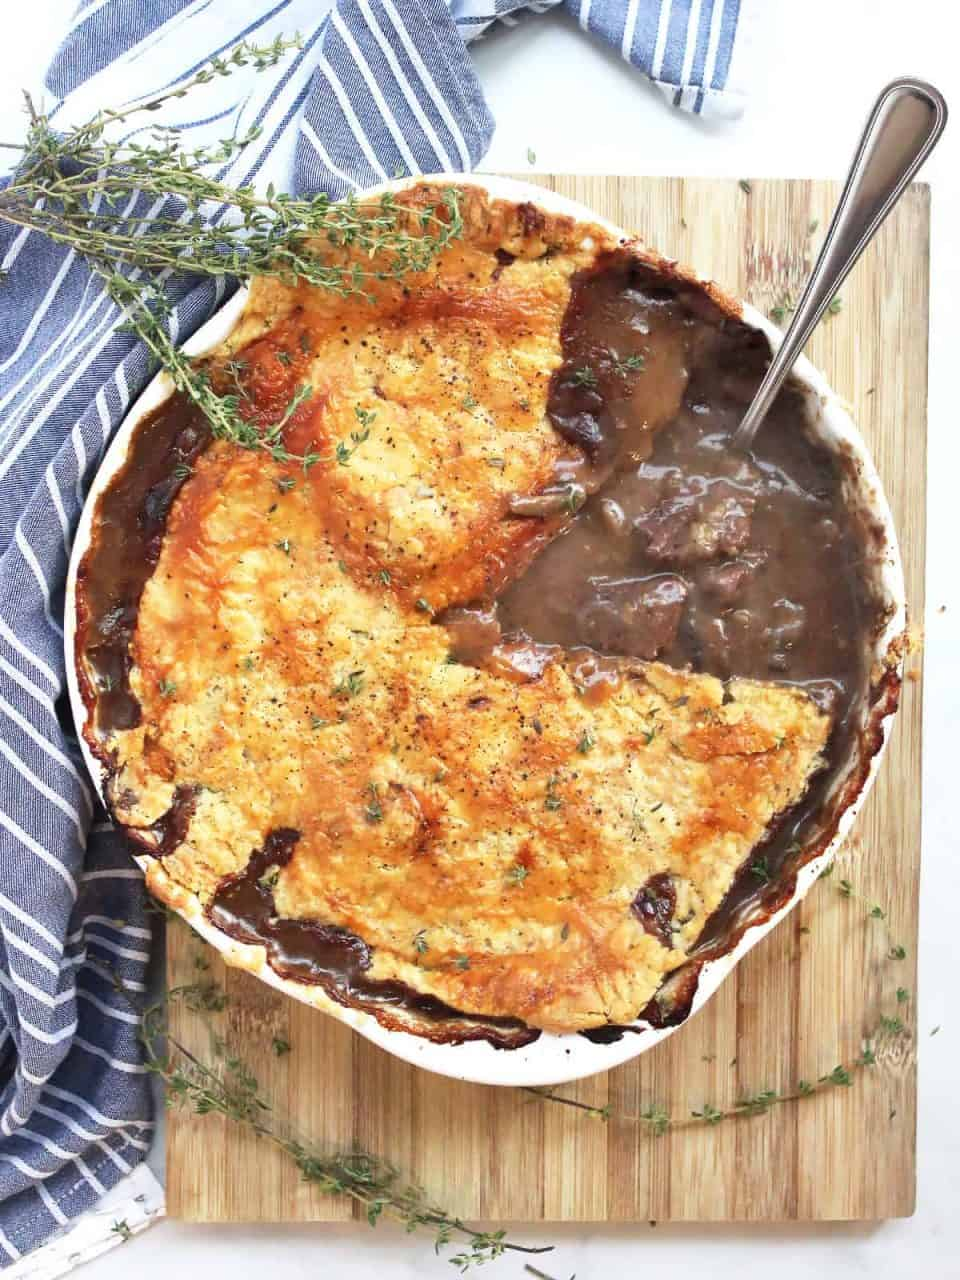 A steak and stilton pie with part of the filling showing. Garnished with fresh thyme.